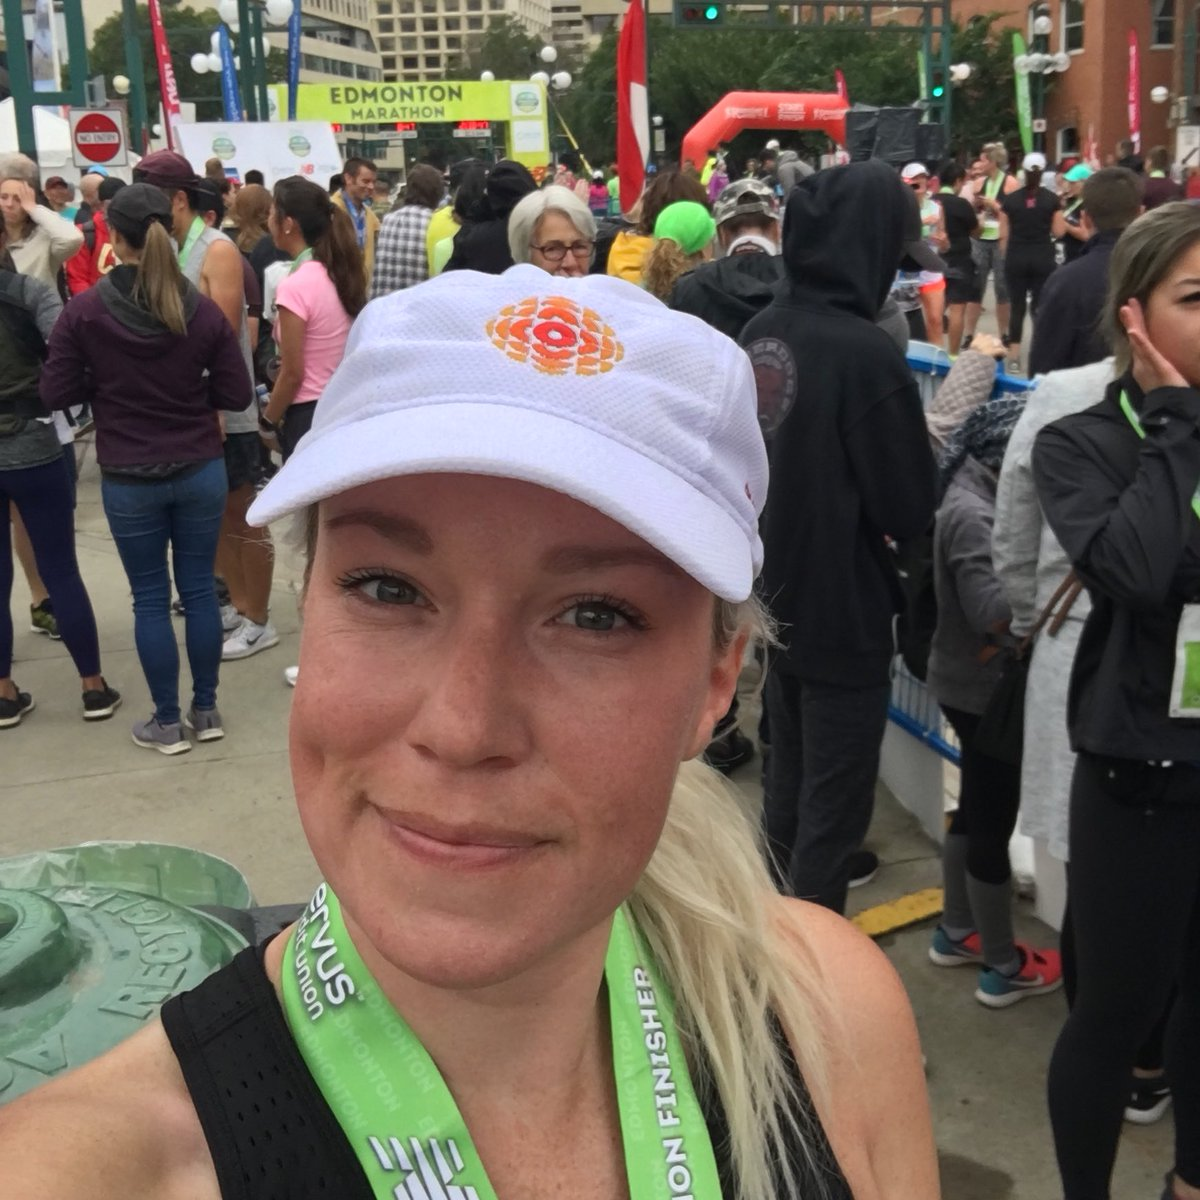 UPDATE: I did it! And in the time I'd hoped. Which means you can also do anything you put your mind to! Thanks for the fun day @Edm_Marathon! #rungoals #halfmarathon<br>http://pic.twitter.com/BEMopsZfAH